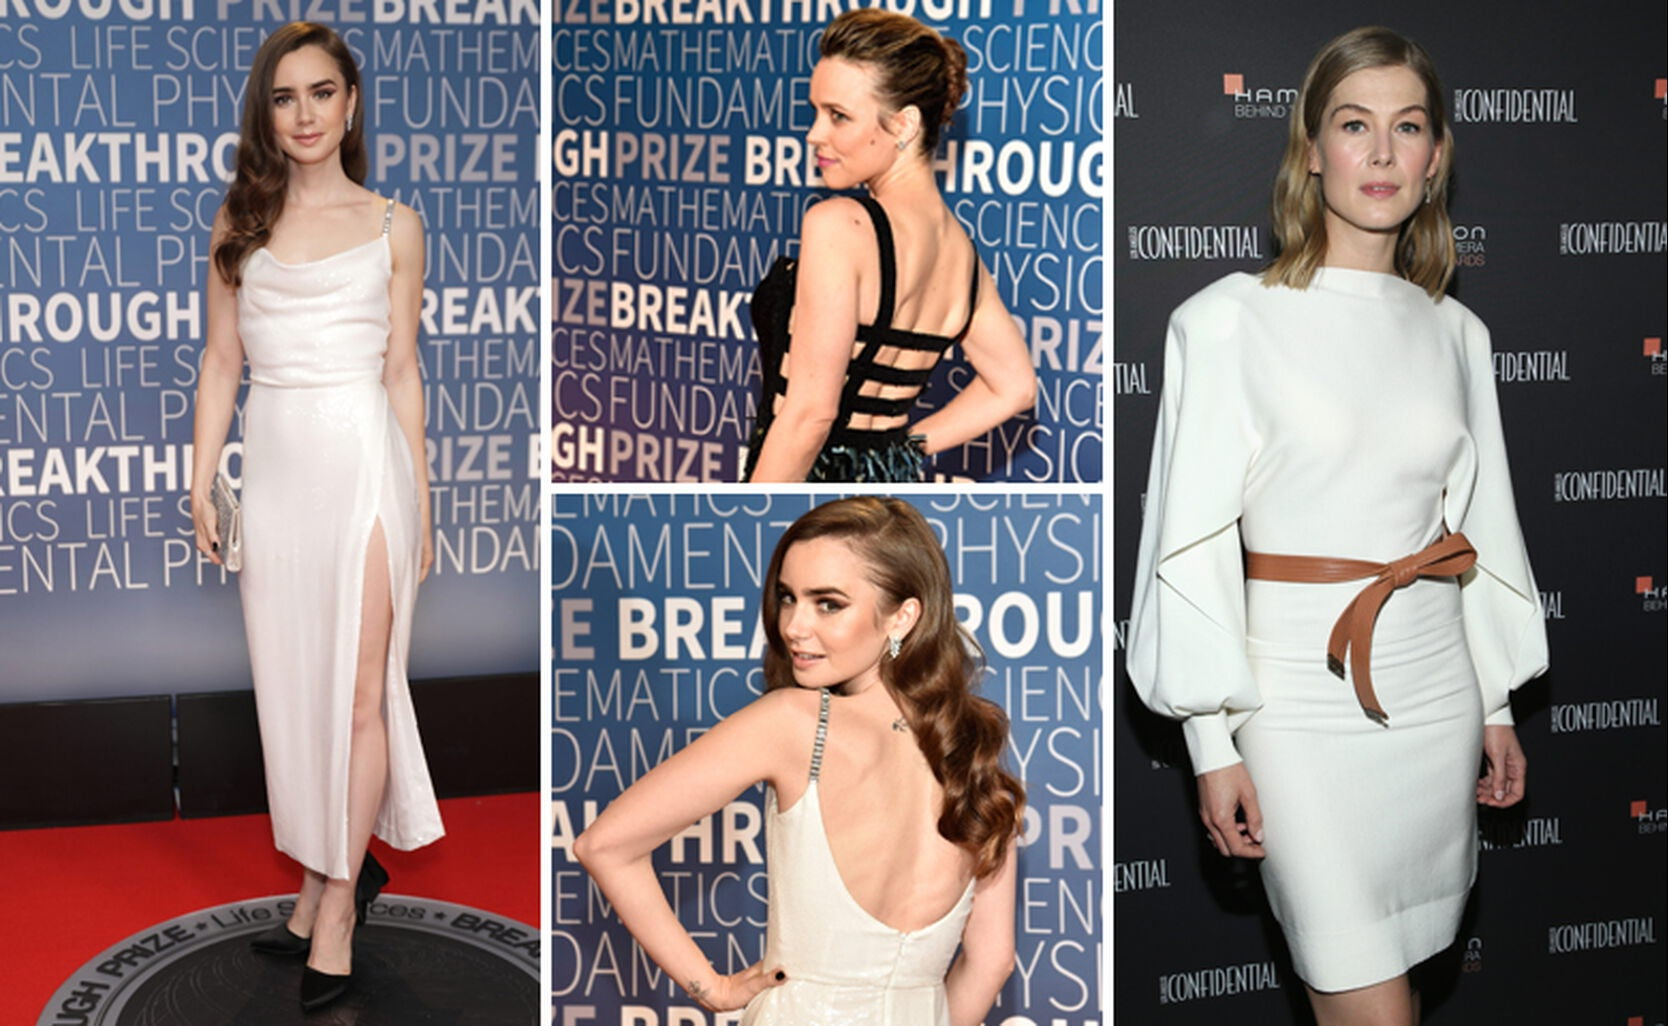 Lily Collins (left), Rachel McAdams, Lilly Collins (middle), Rosamund Pike (right)